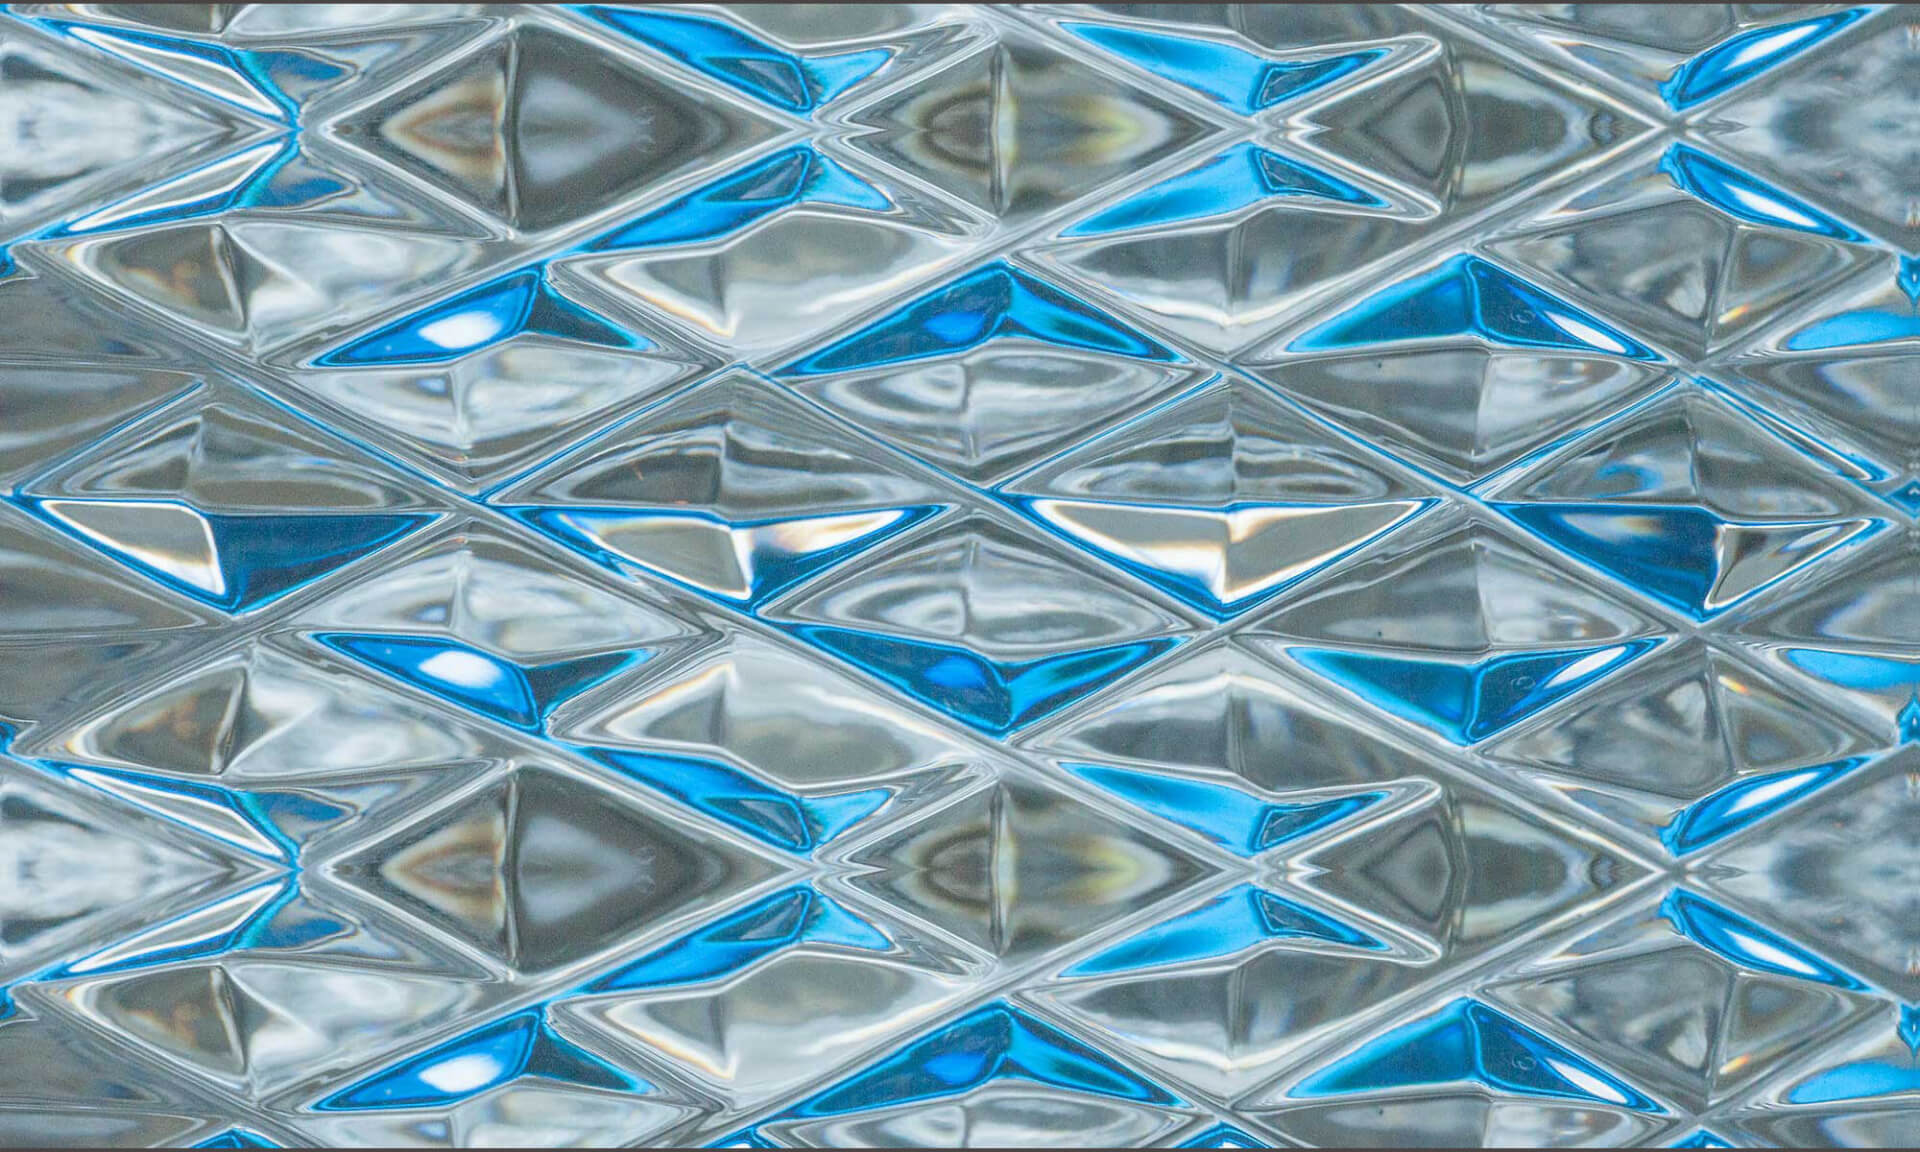 Diamond Blue Glass (DE9054) Doug Garrabrants